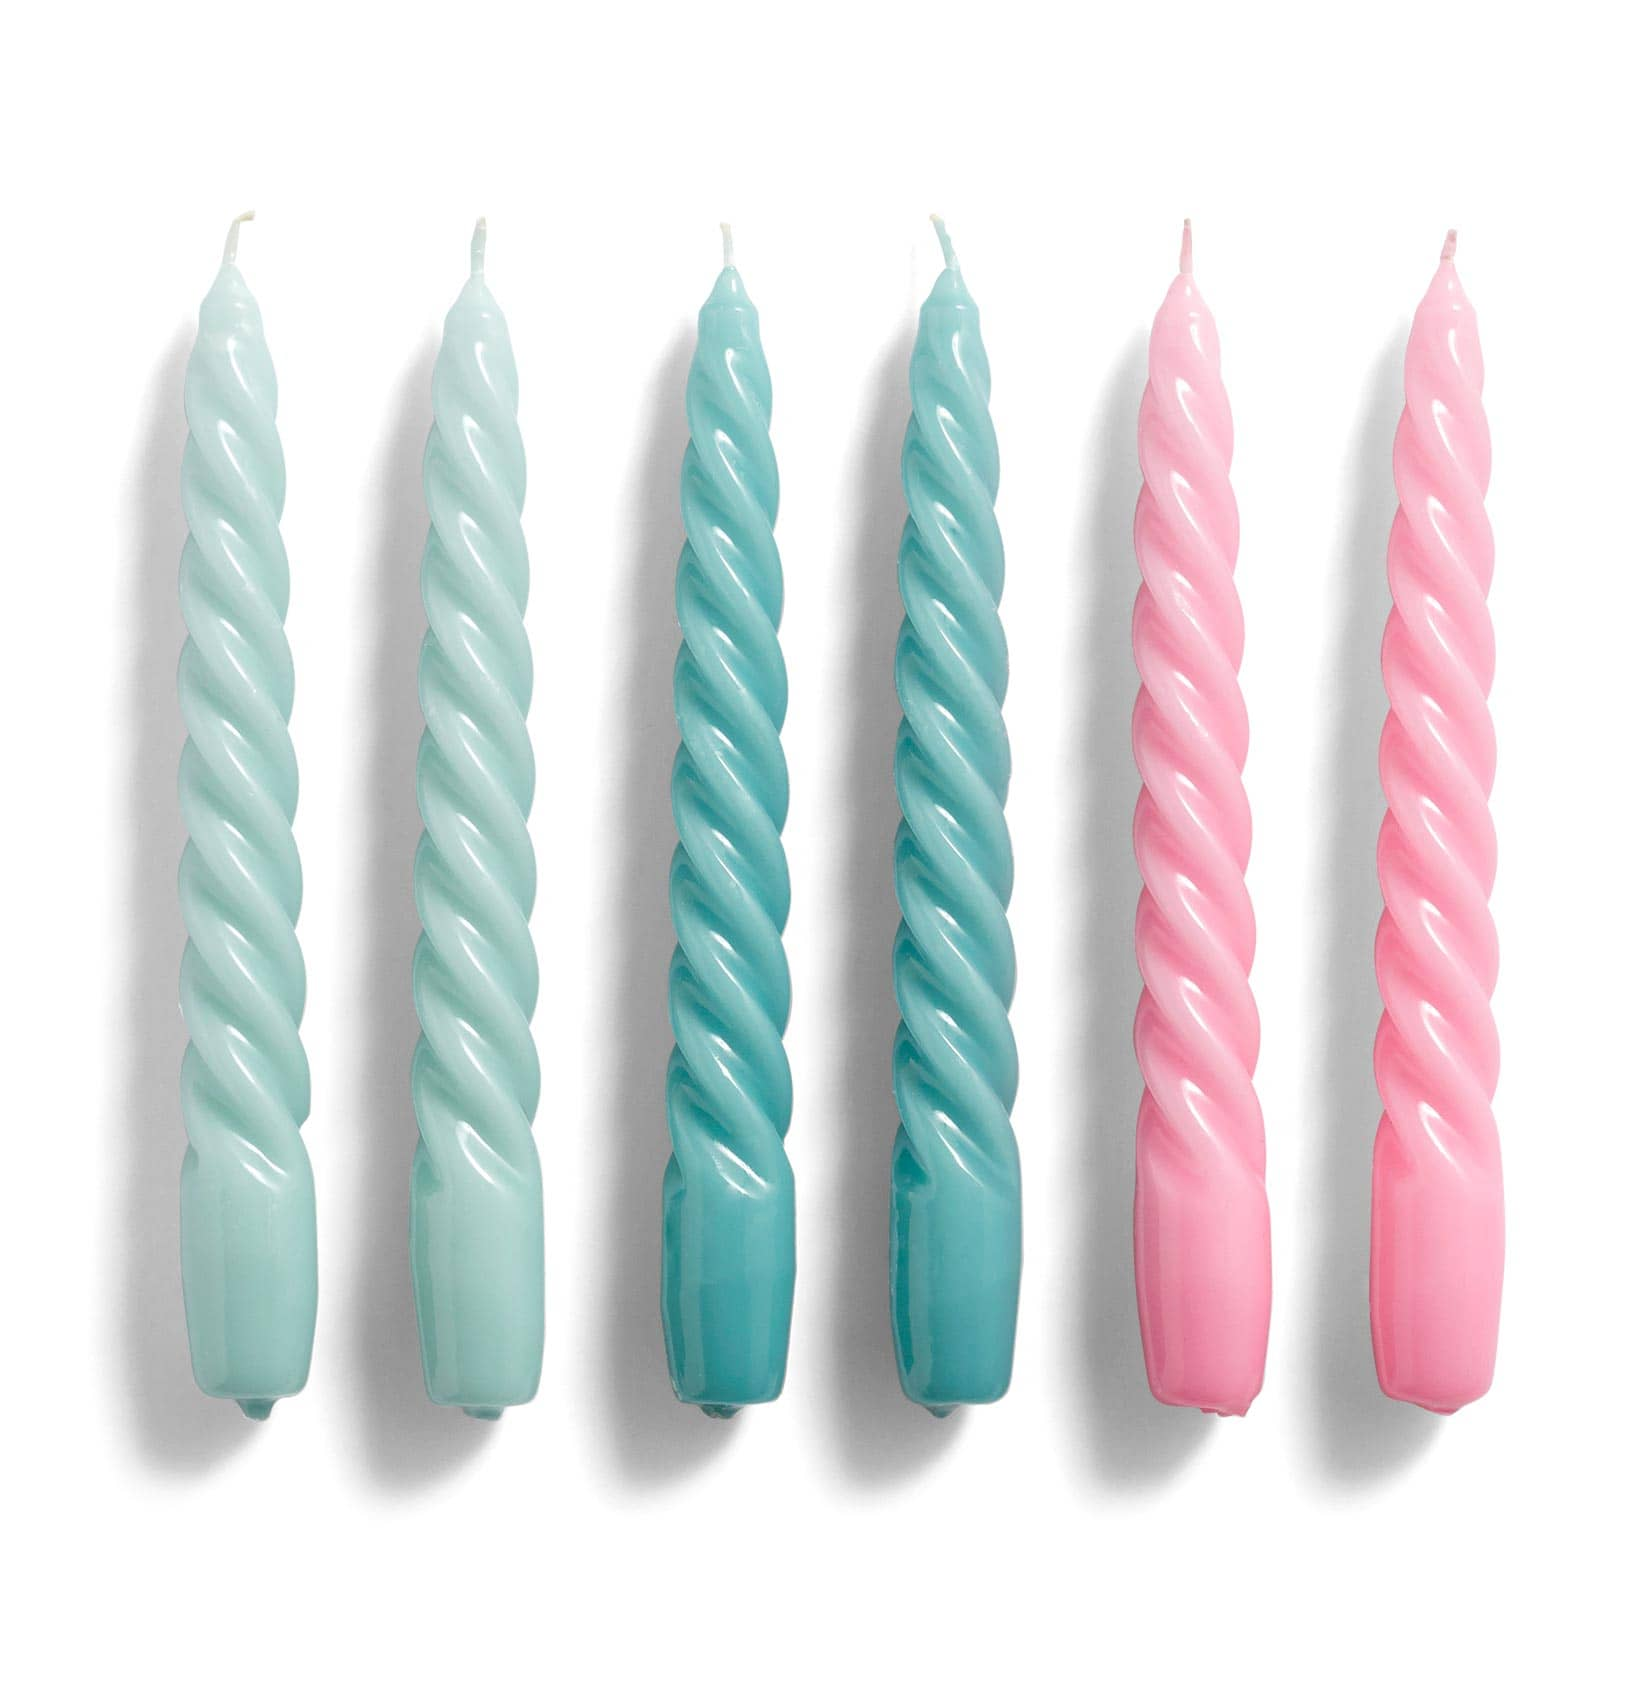 HAY Candle – Set of 6 – Twist – Arctic Blue, Teal, Pink